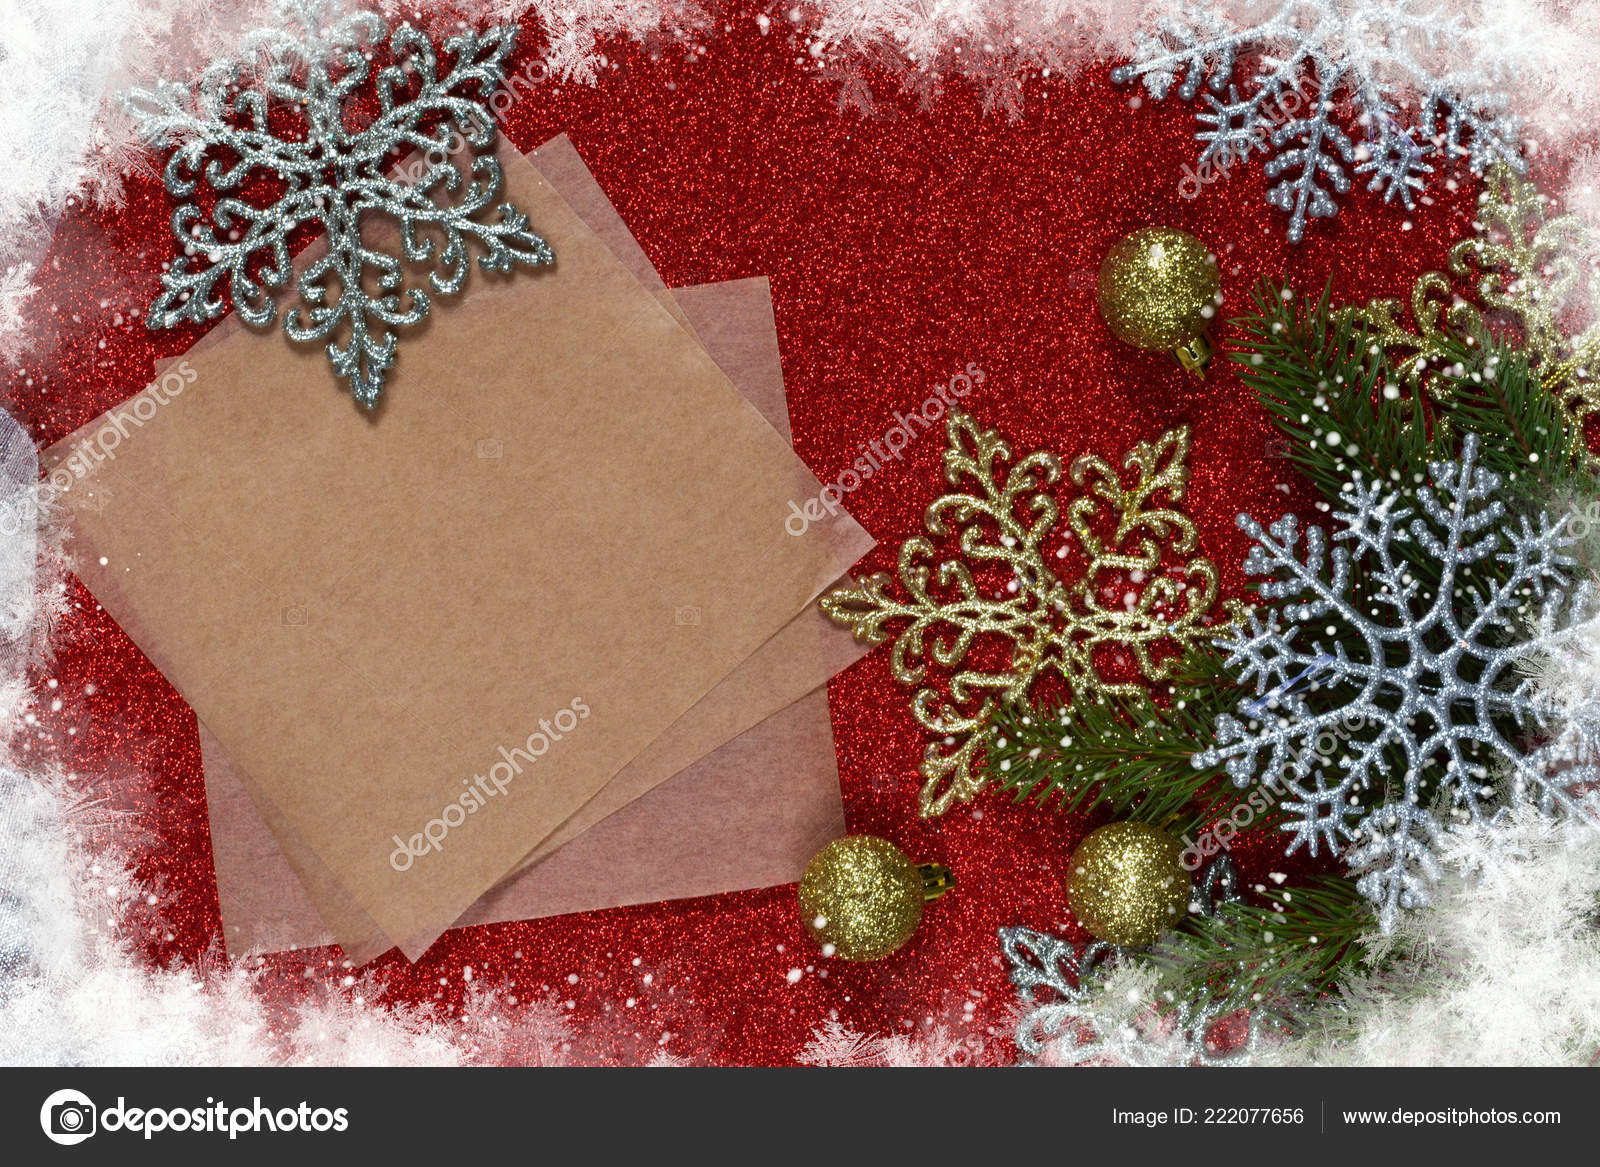 new year card with space for text decoration for the new year merry christmas and happy new year photo by demchenkov dmailru